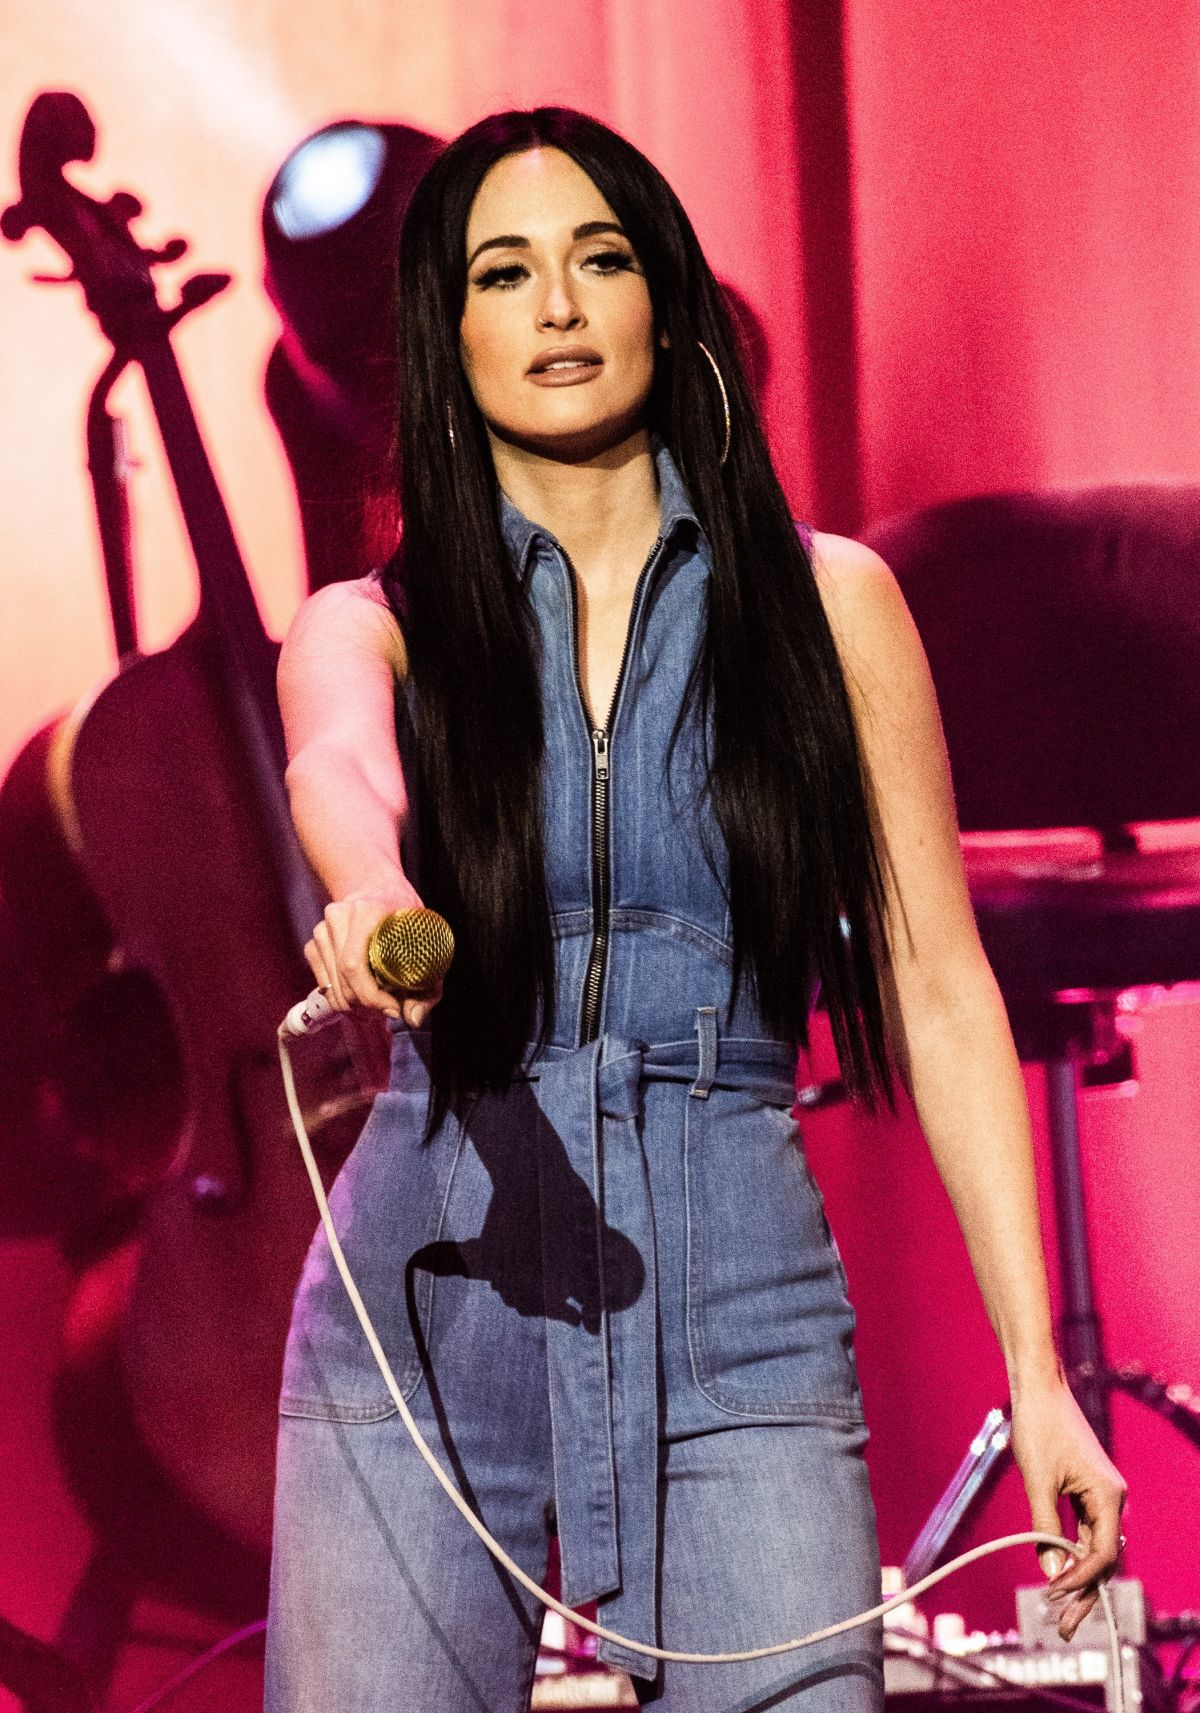 Kacey Musgraves Performs At A Concert In San Frascisco 02